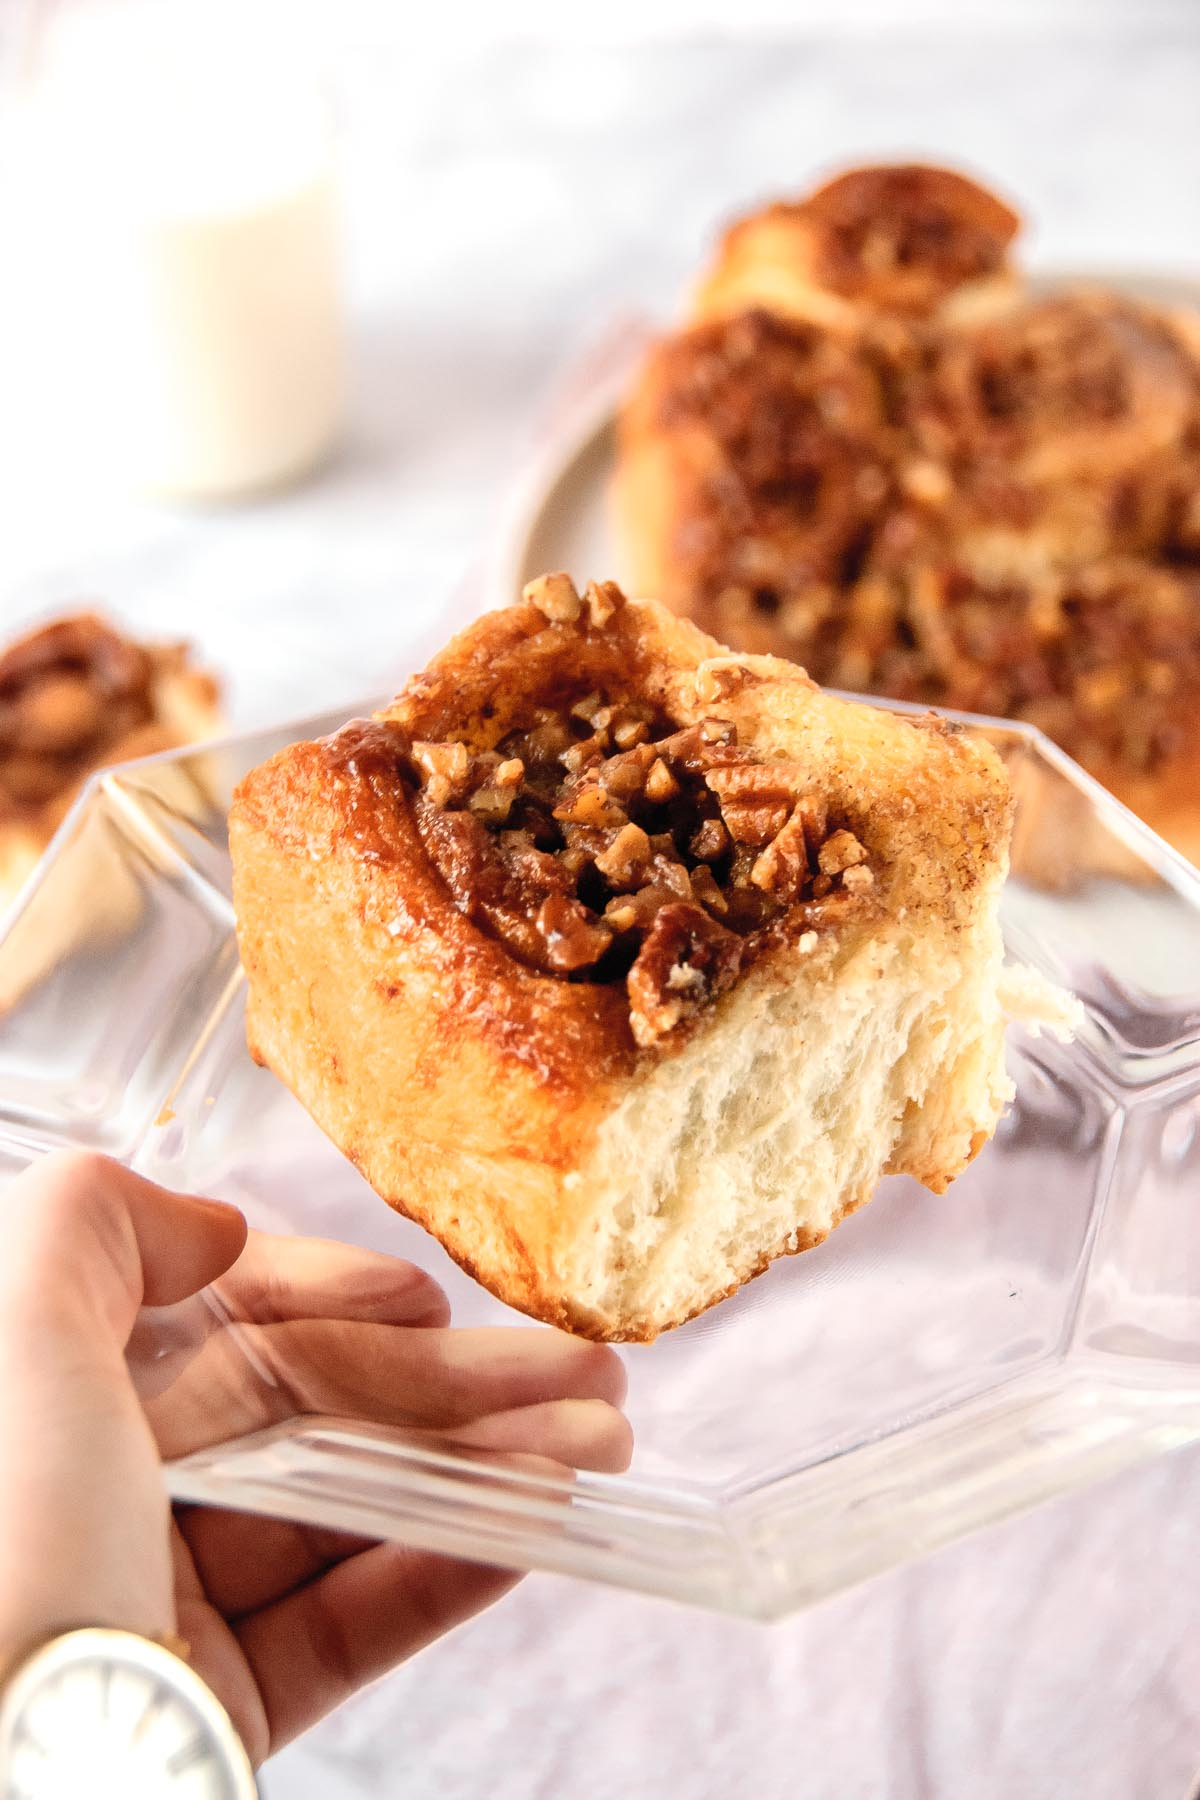 Cinnamon roll on clear glass plate being held by a hand wearing a wood watch and a platter of cinnamon rolls in the background.